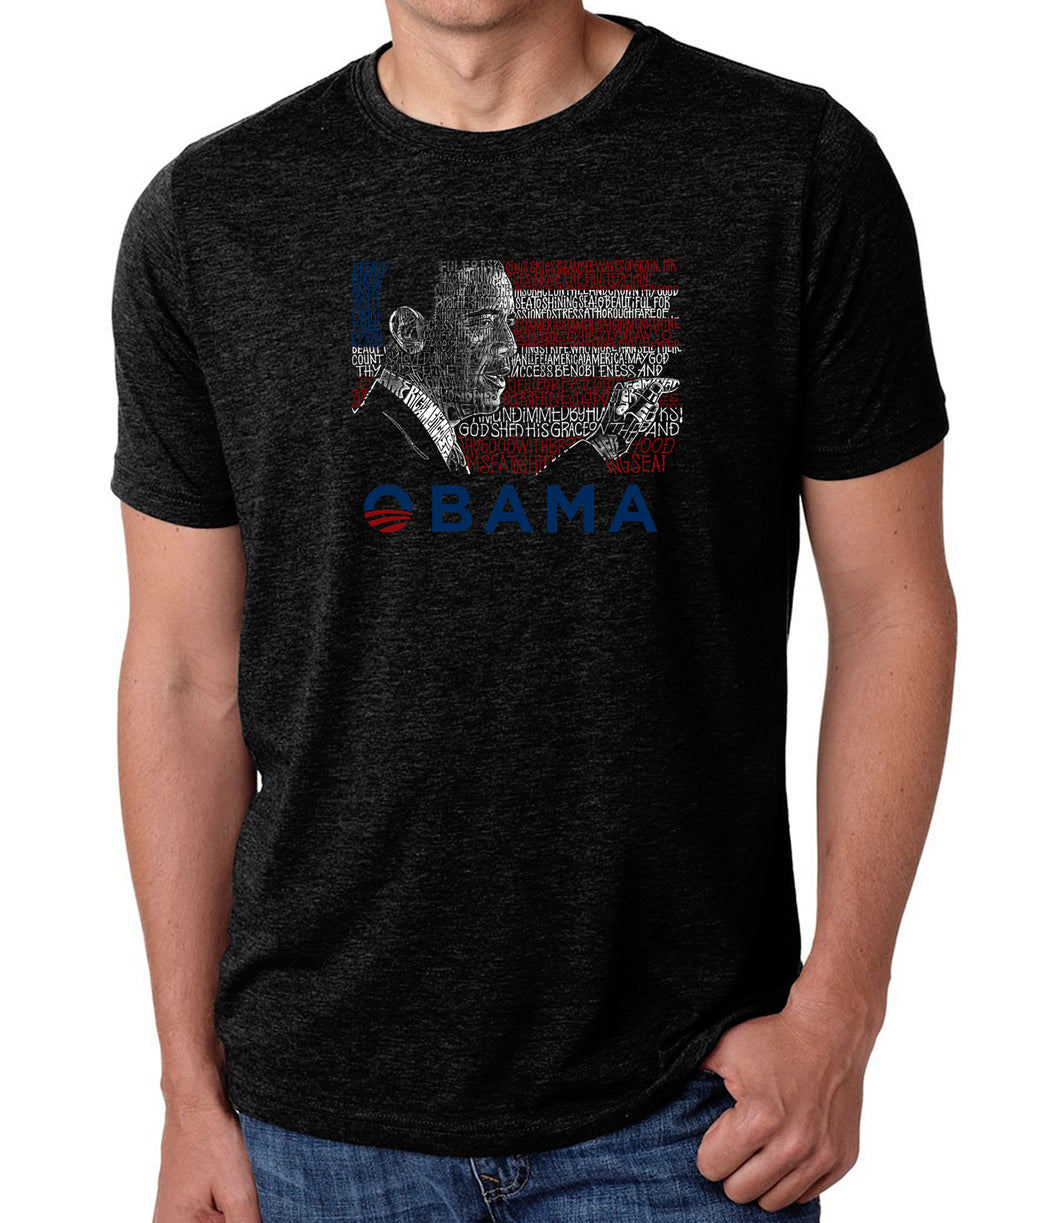 LA Pop Art Men's Premium Blend Word Art T-shirt - BARACK OBAMA - ALL LYRICS TO AMERICA THE BEAUTIFUL